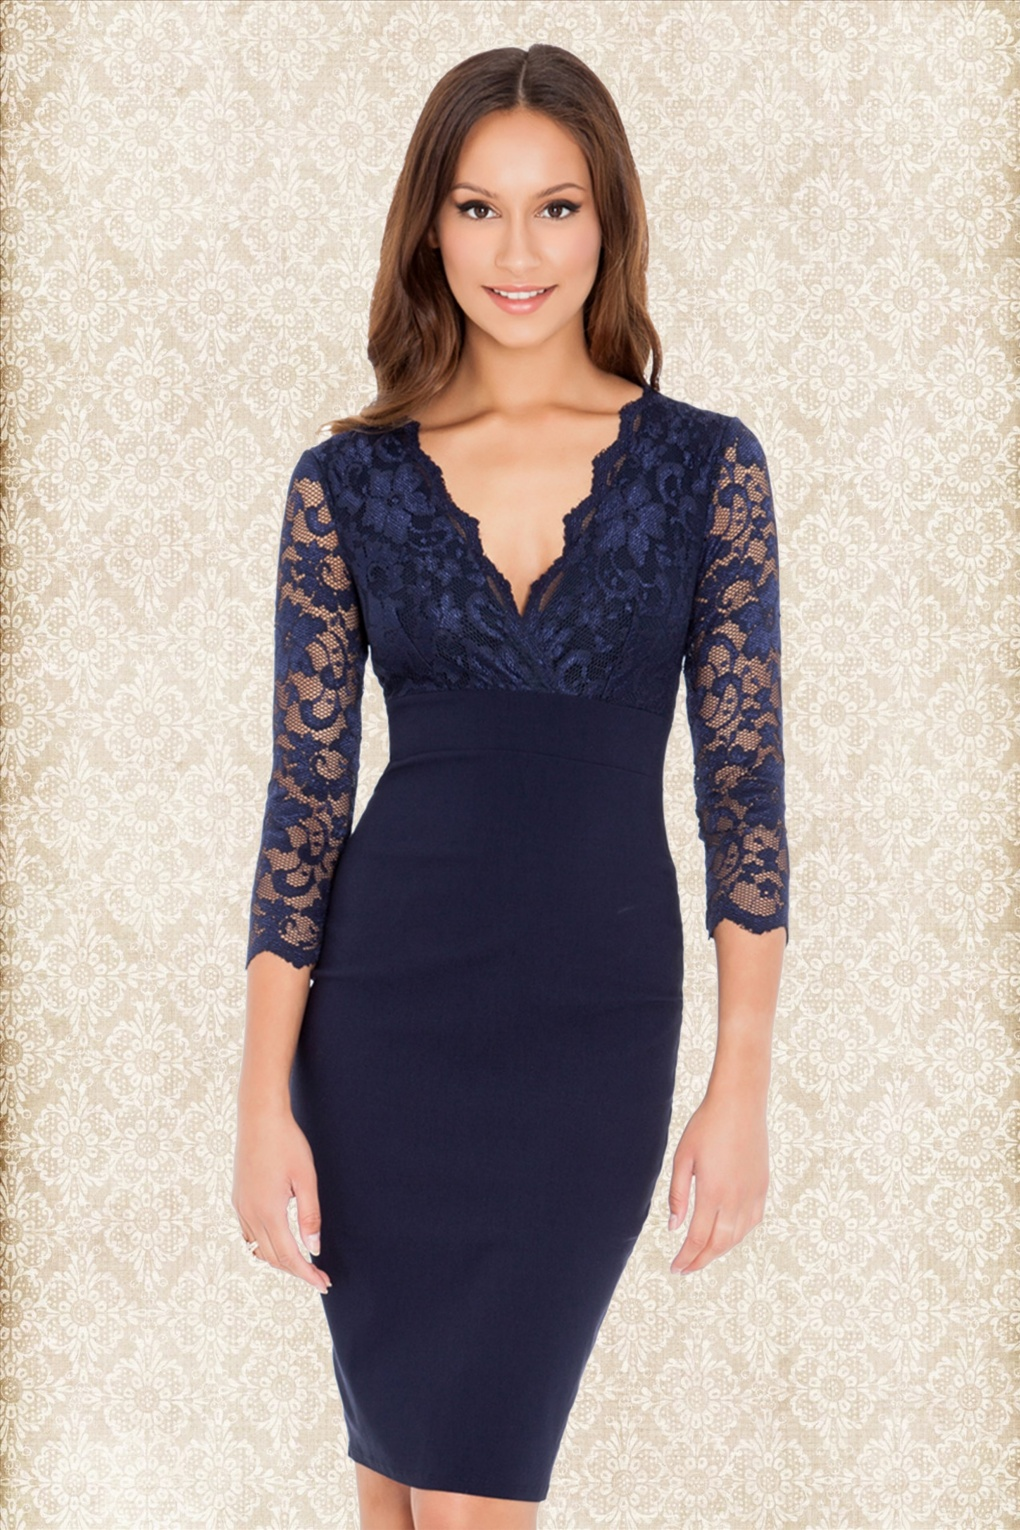 Long Sleeve Navy Blue Dress